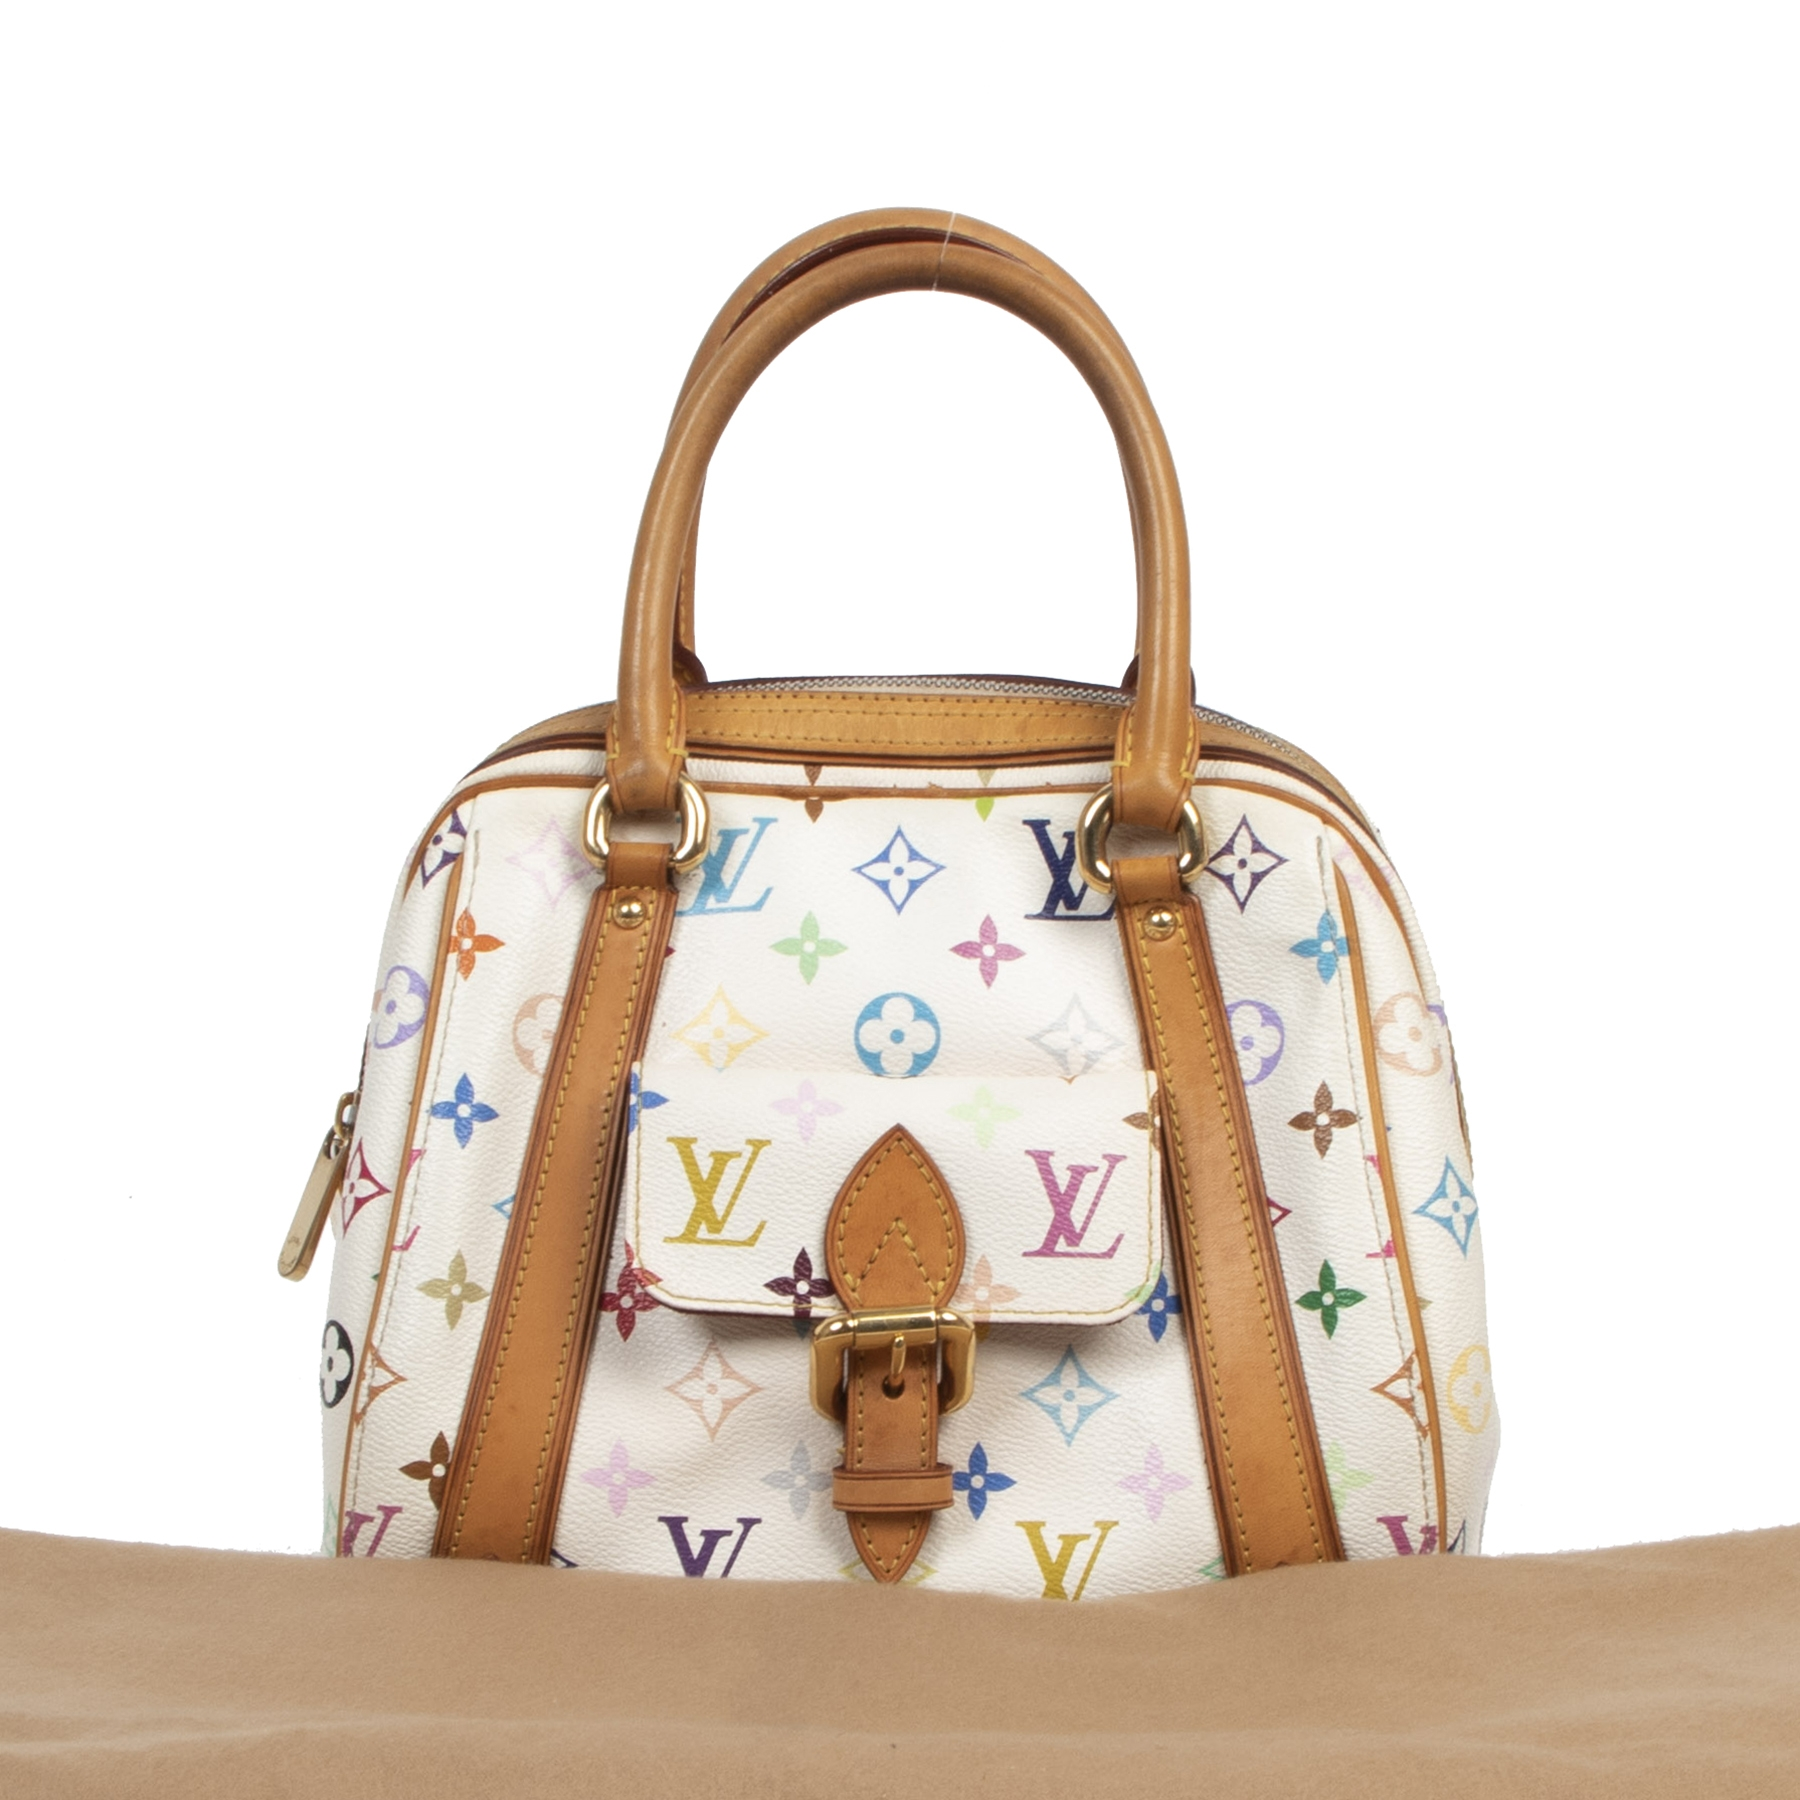 Authentic secondhand Louis Vuitton Priscilla White Multicolore Monogram Handbag designer bags fashion luxury vintage webshop safe secure online shopping